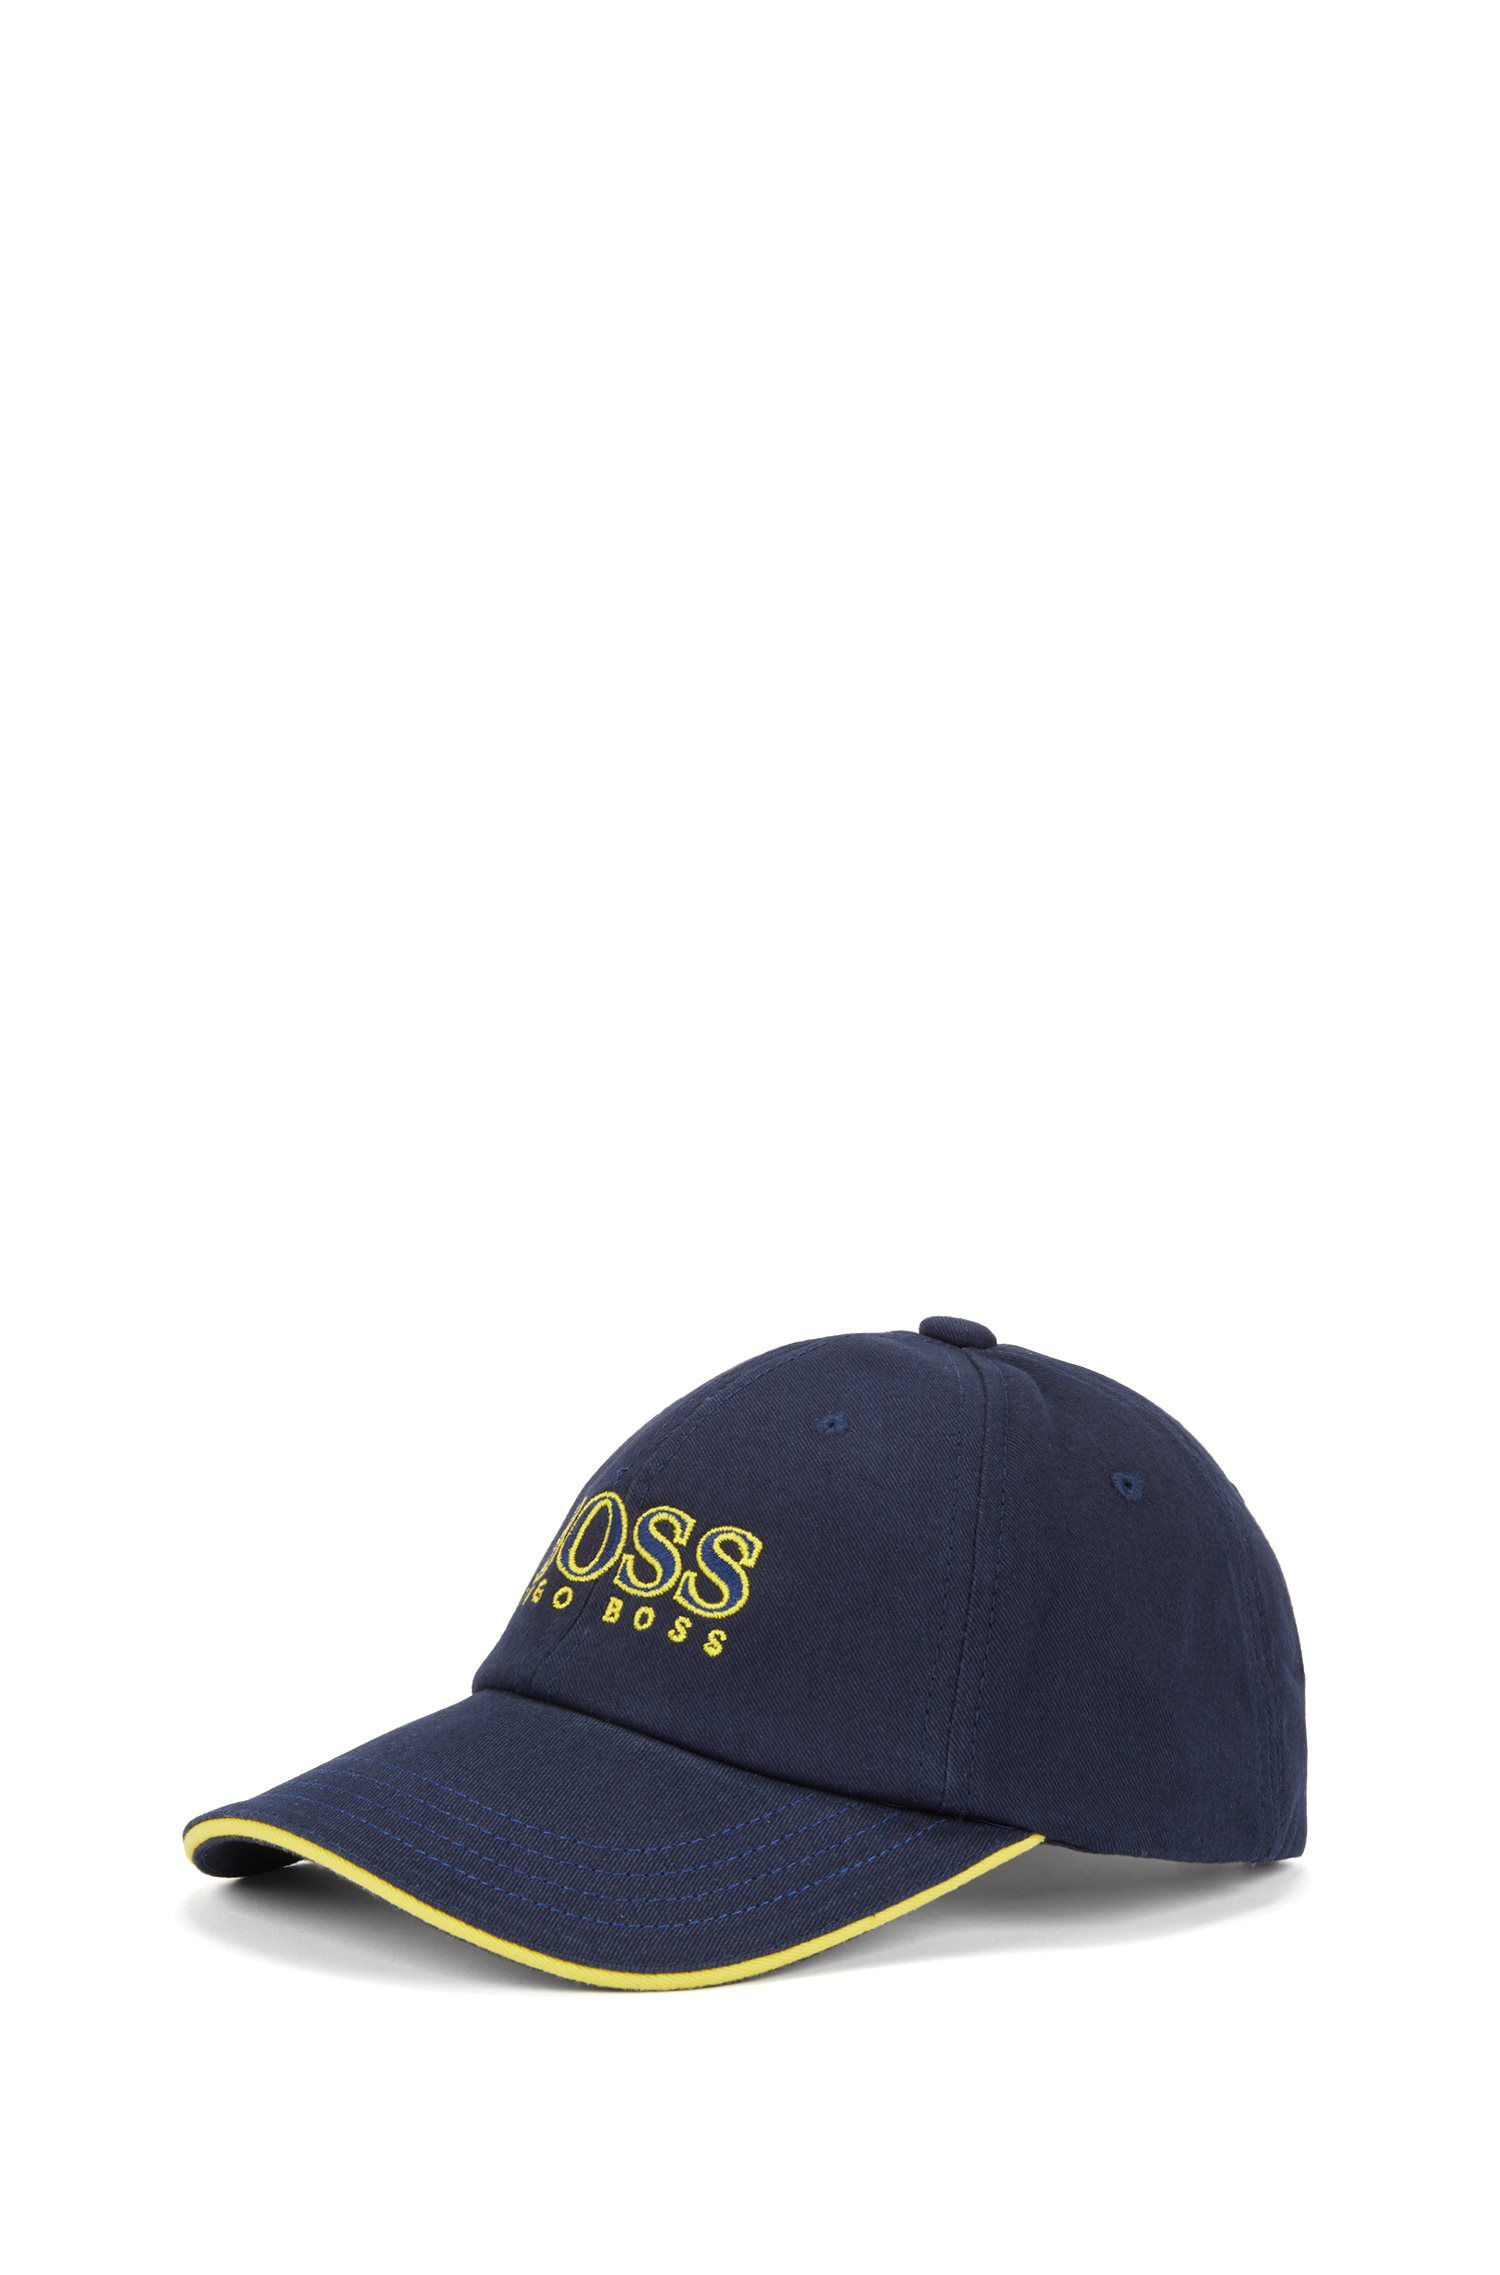 Kids' logo-embroidered baseball cap in cotton twill